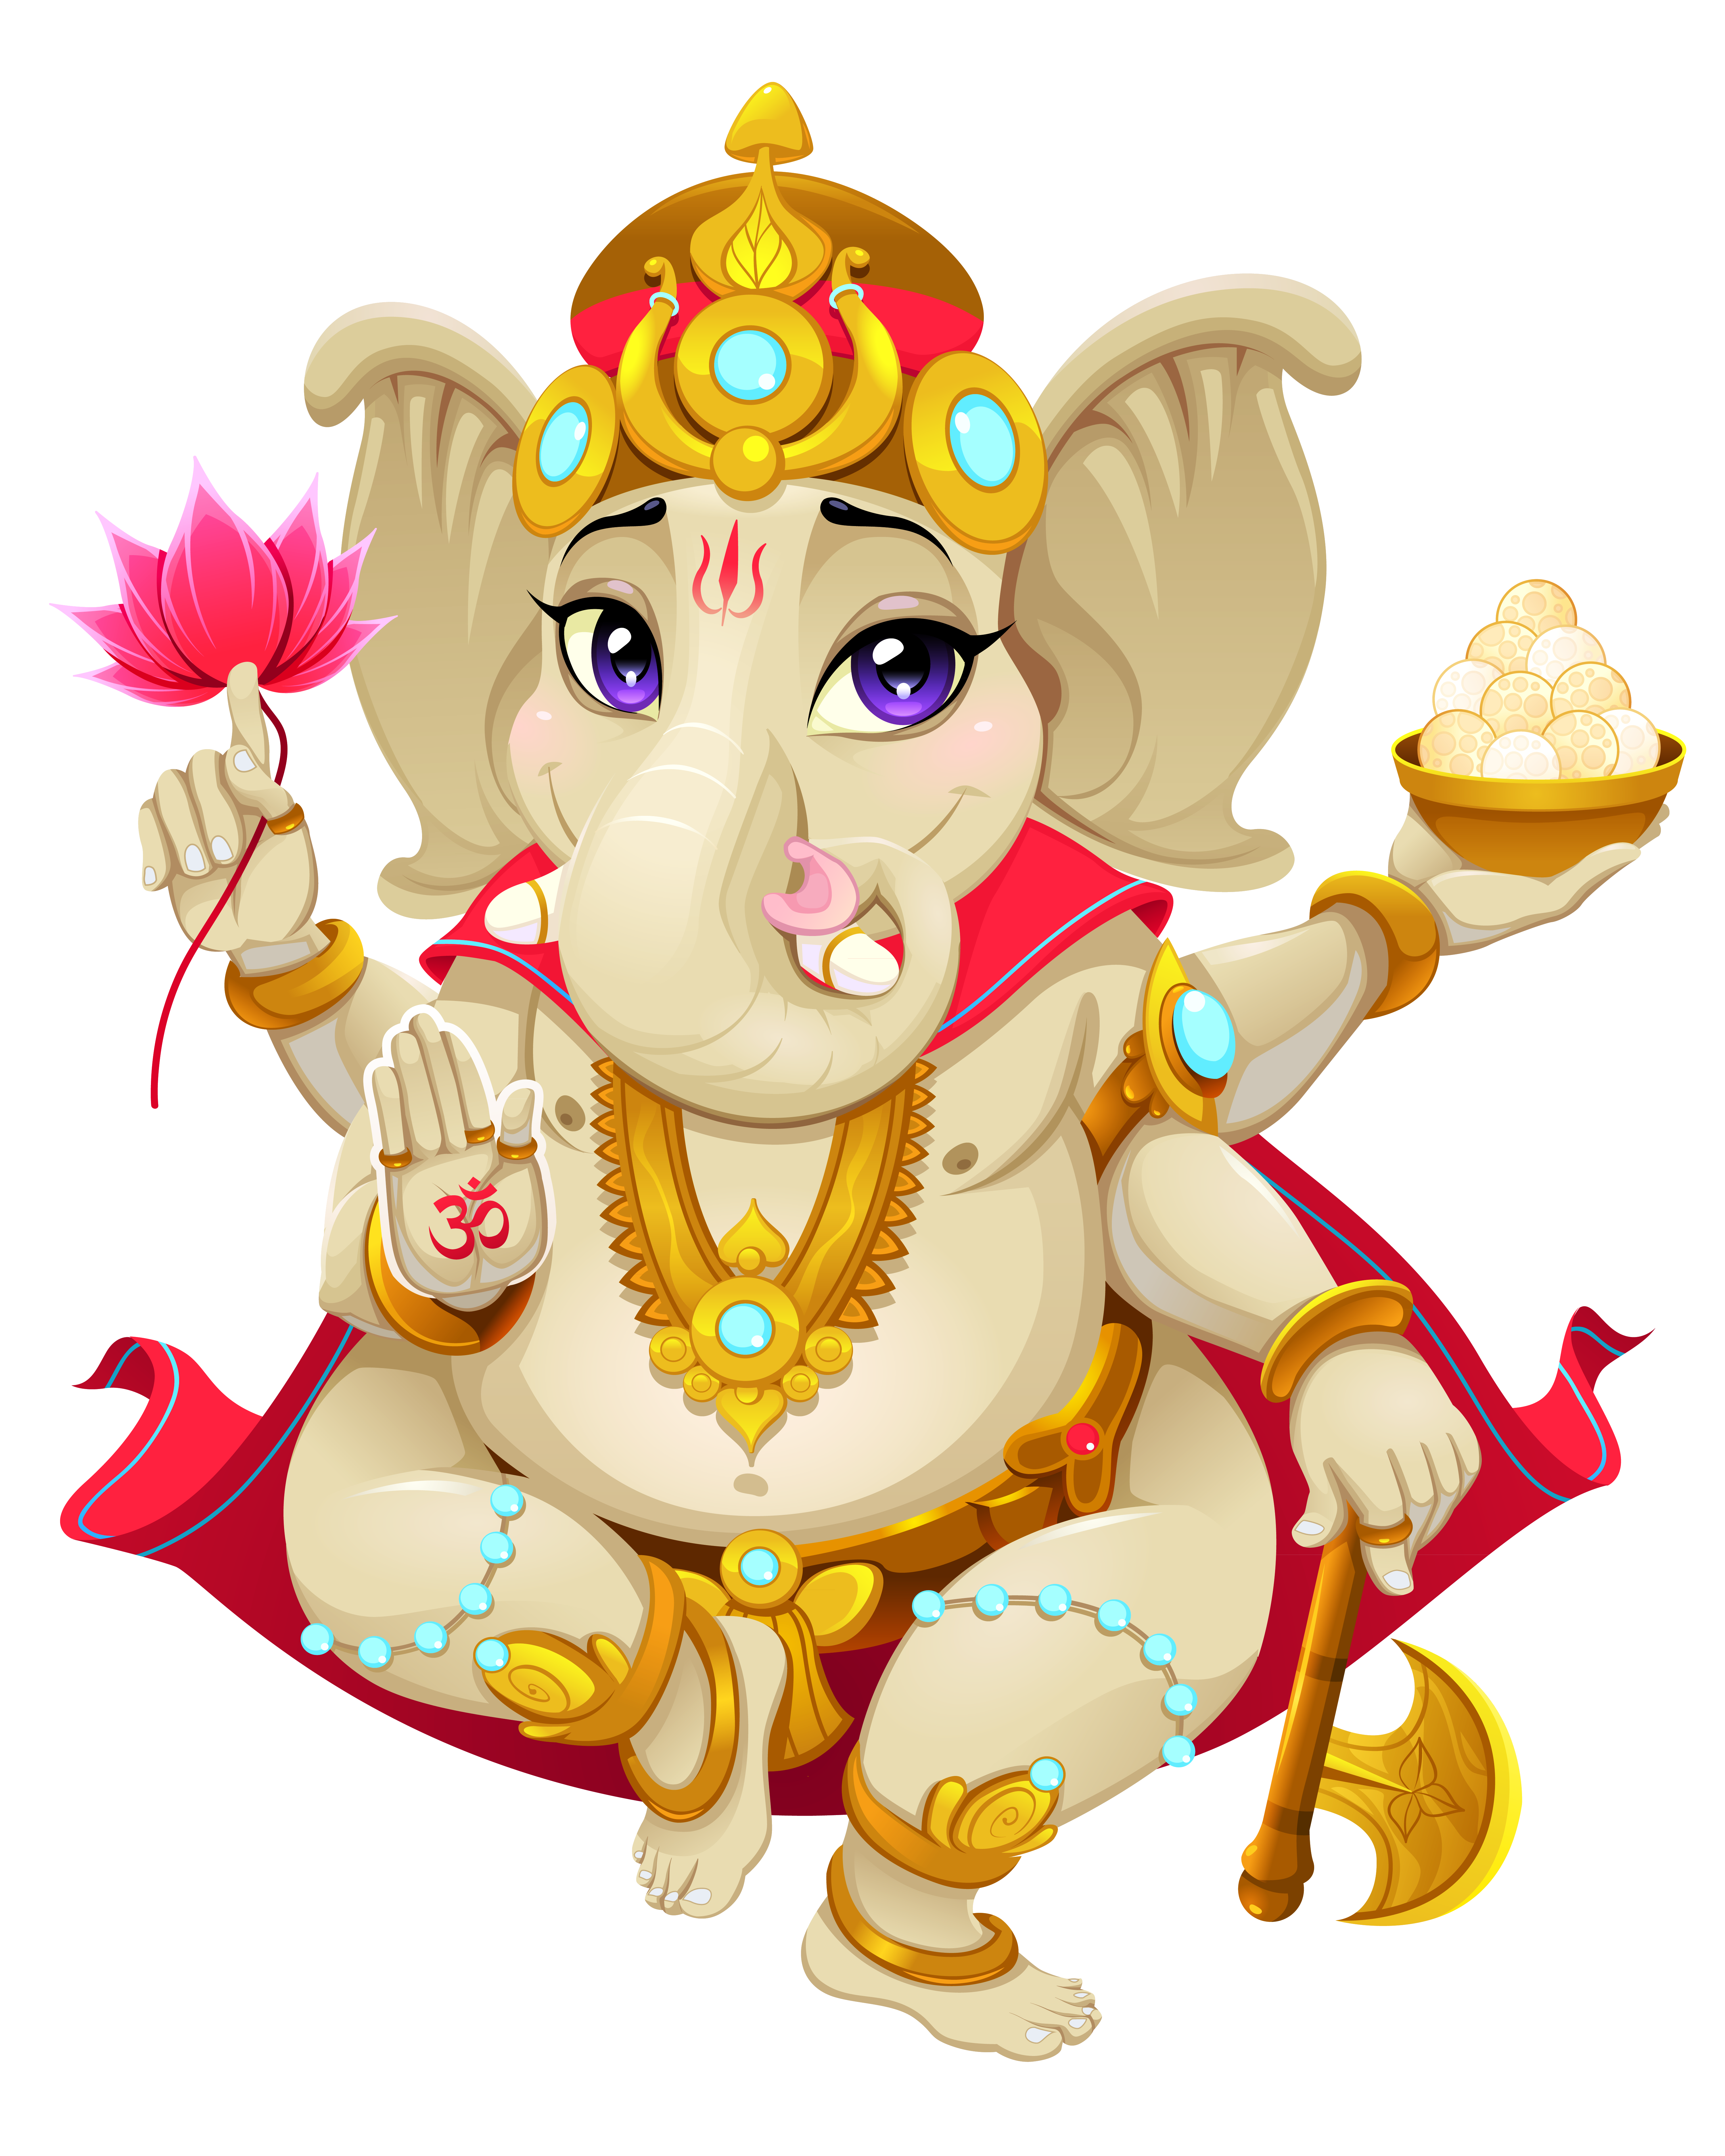 Weddingposters In Nbspthis Website Is For Sale Nbspcloud Server Monitoring Resources And Information Cartoon Illustration Ganesh Ganesha